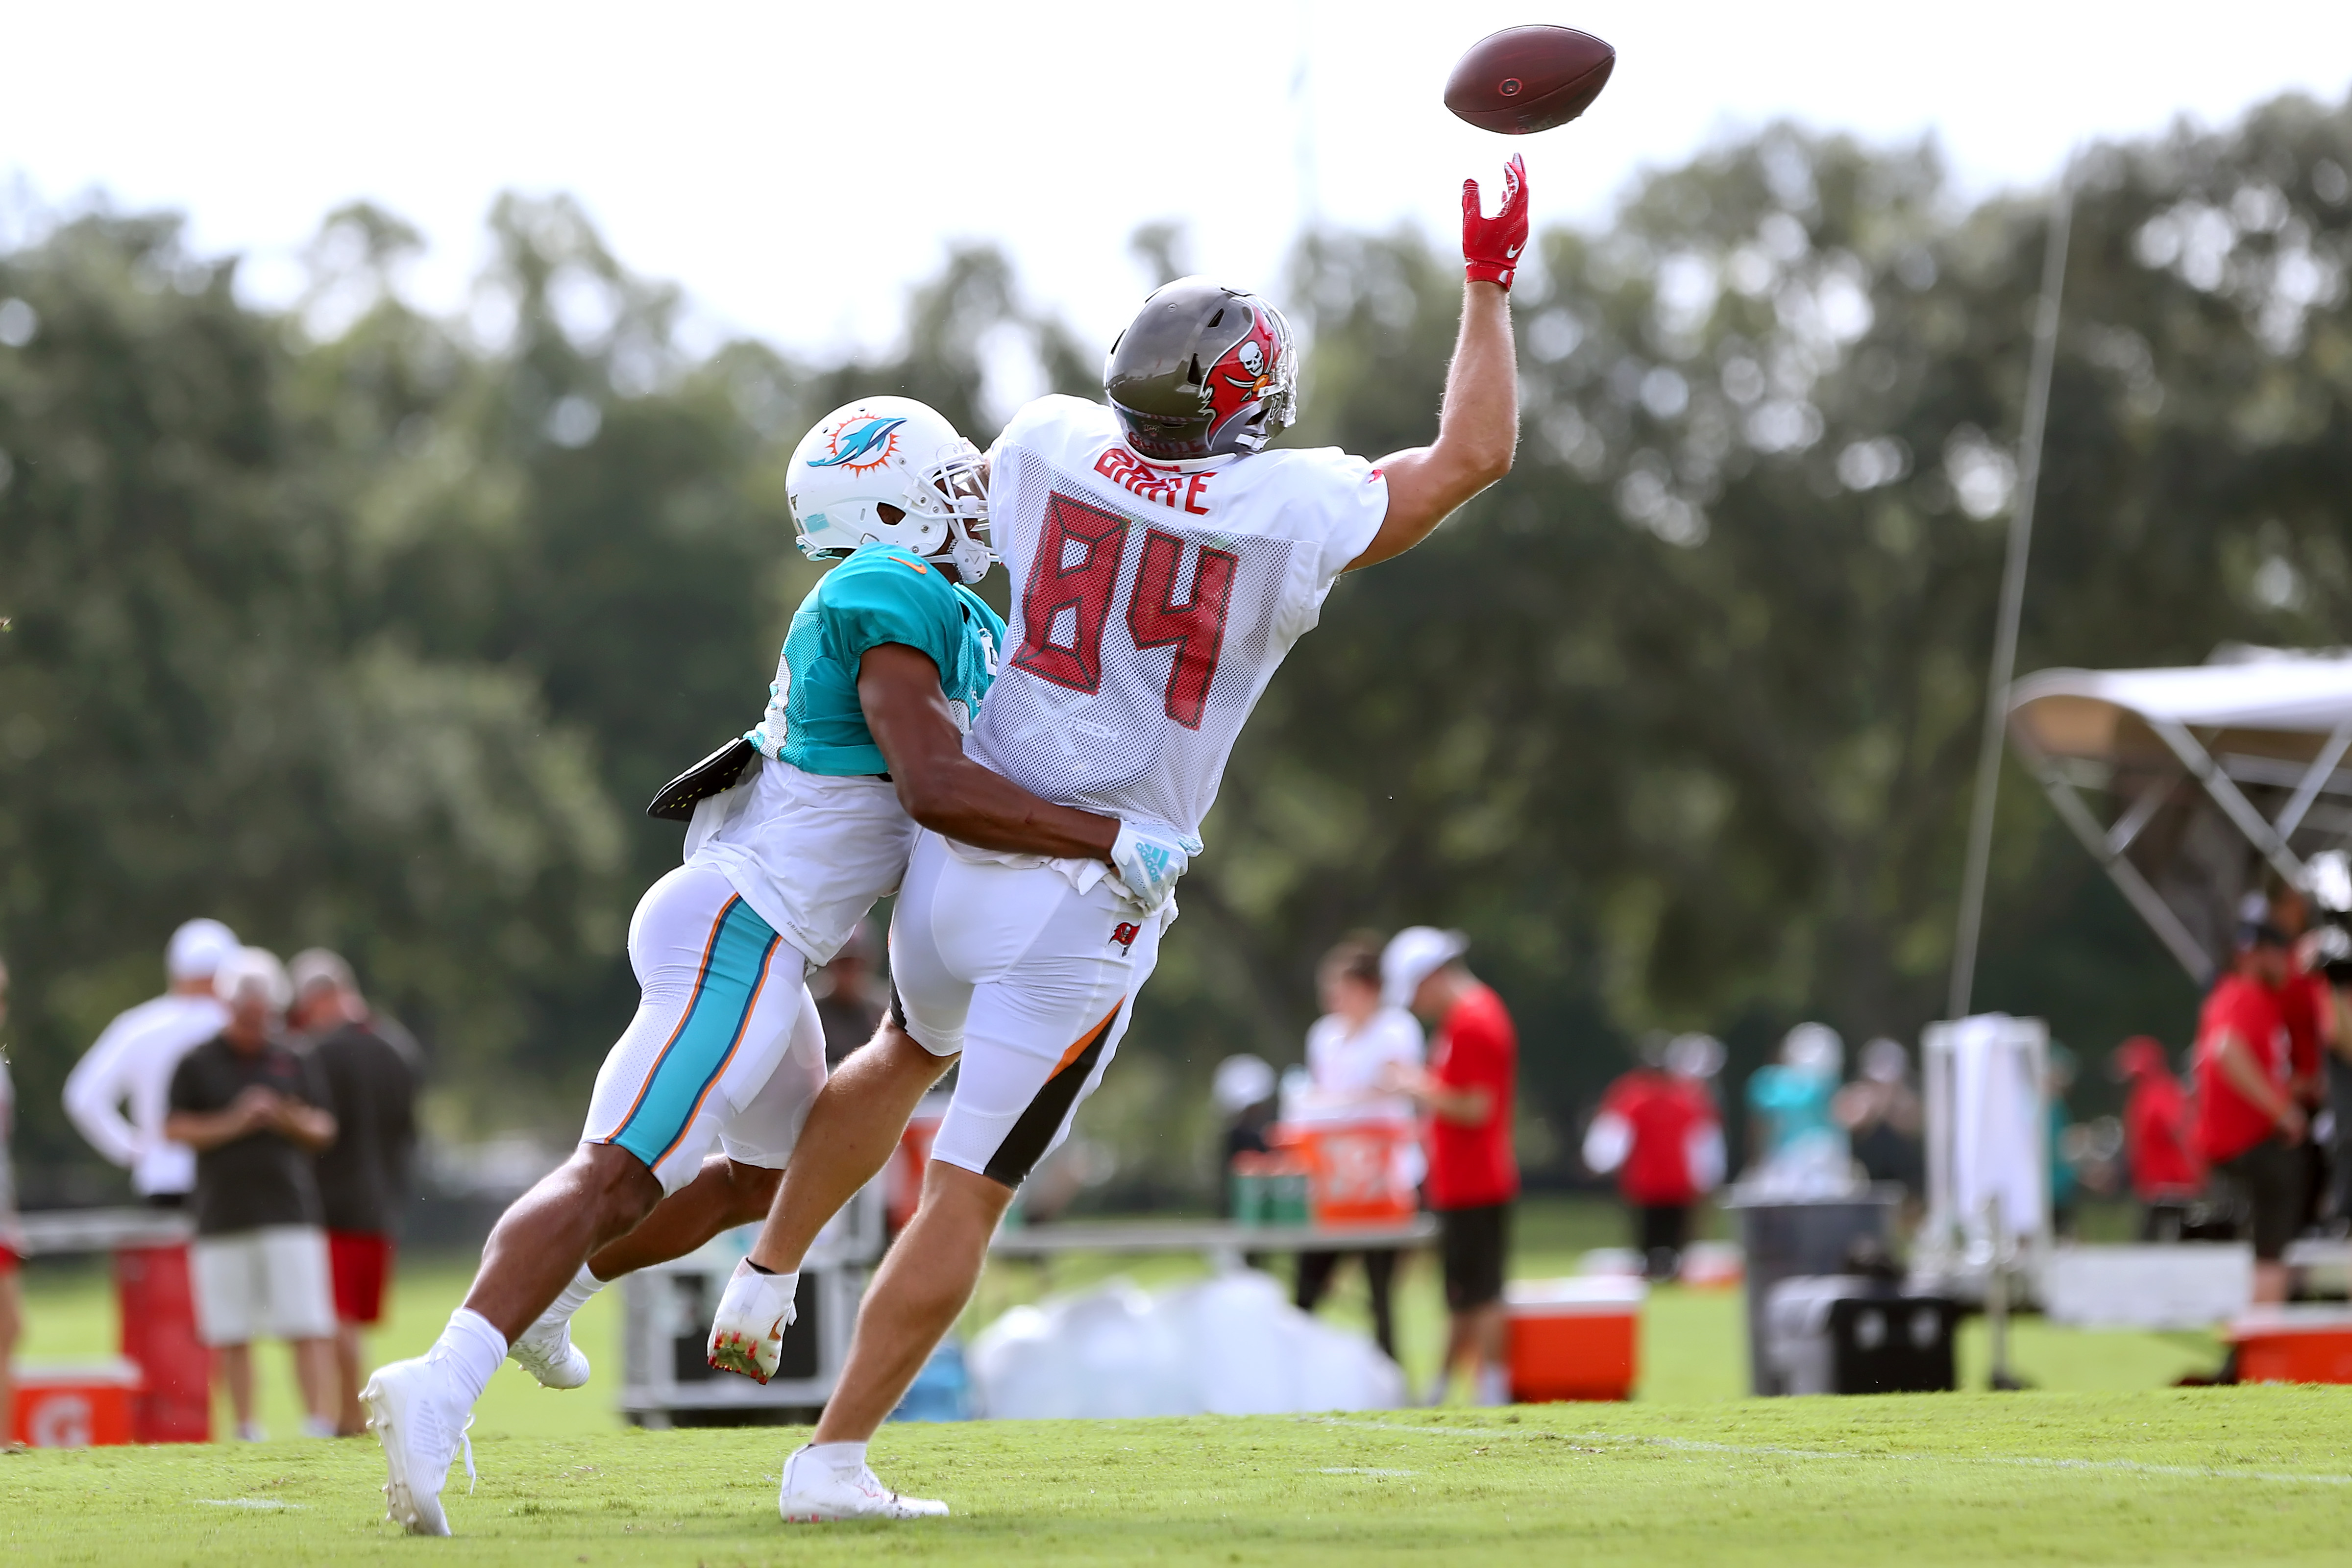 NFL: AUG 13 Buccaneers and Dolphins Joint Practice